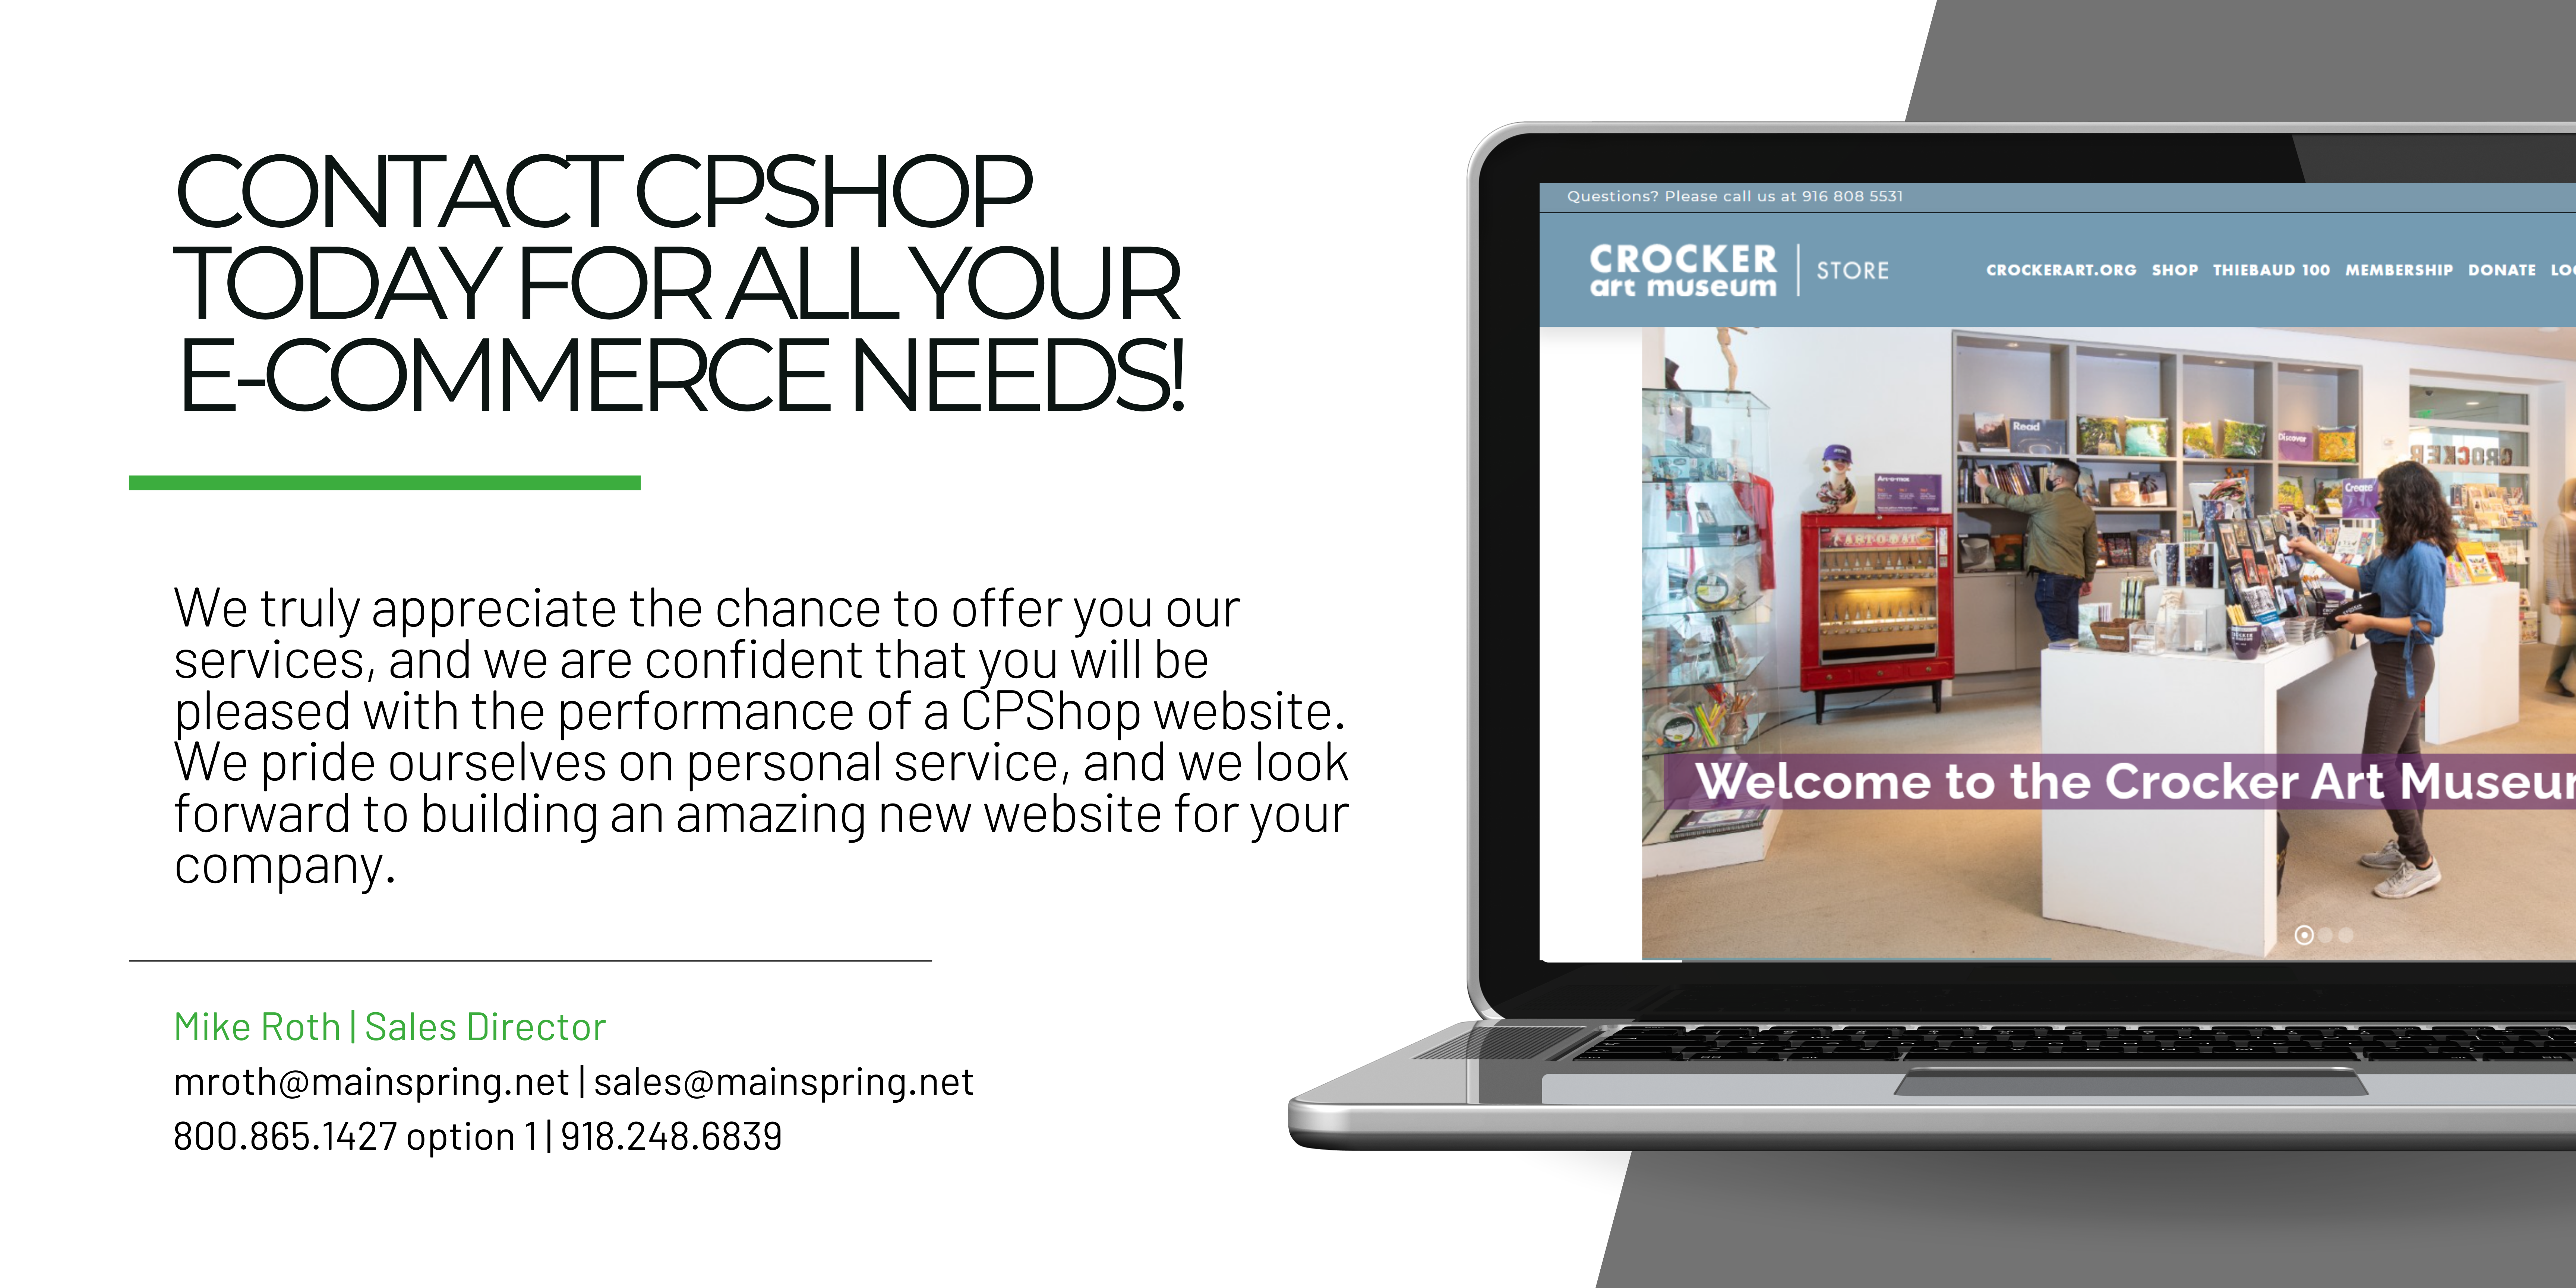 Contact CPShop for E-commerce Website